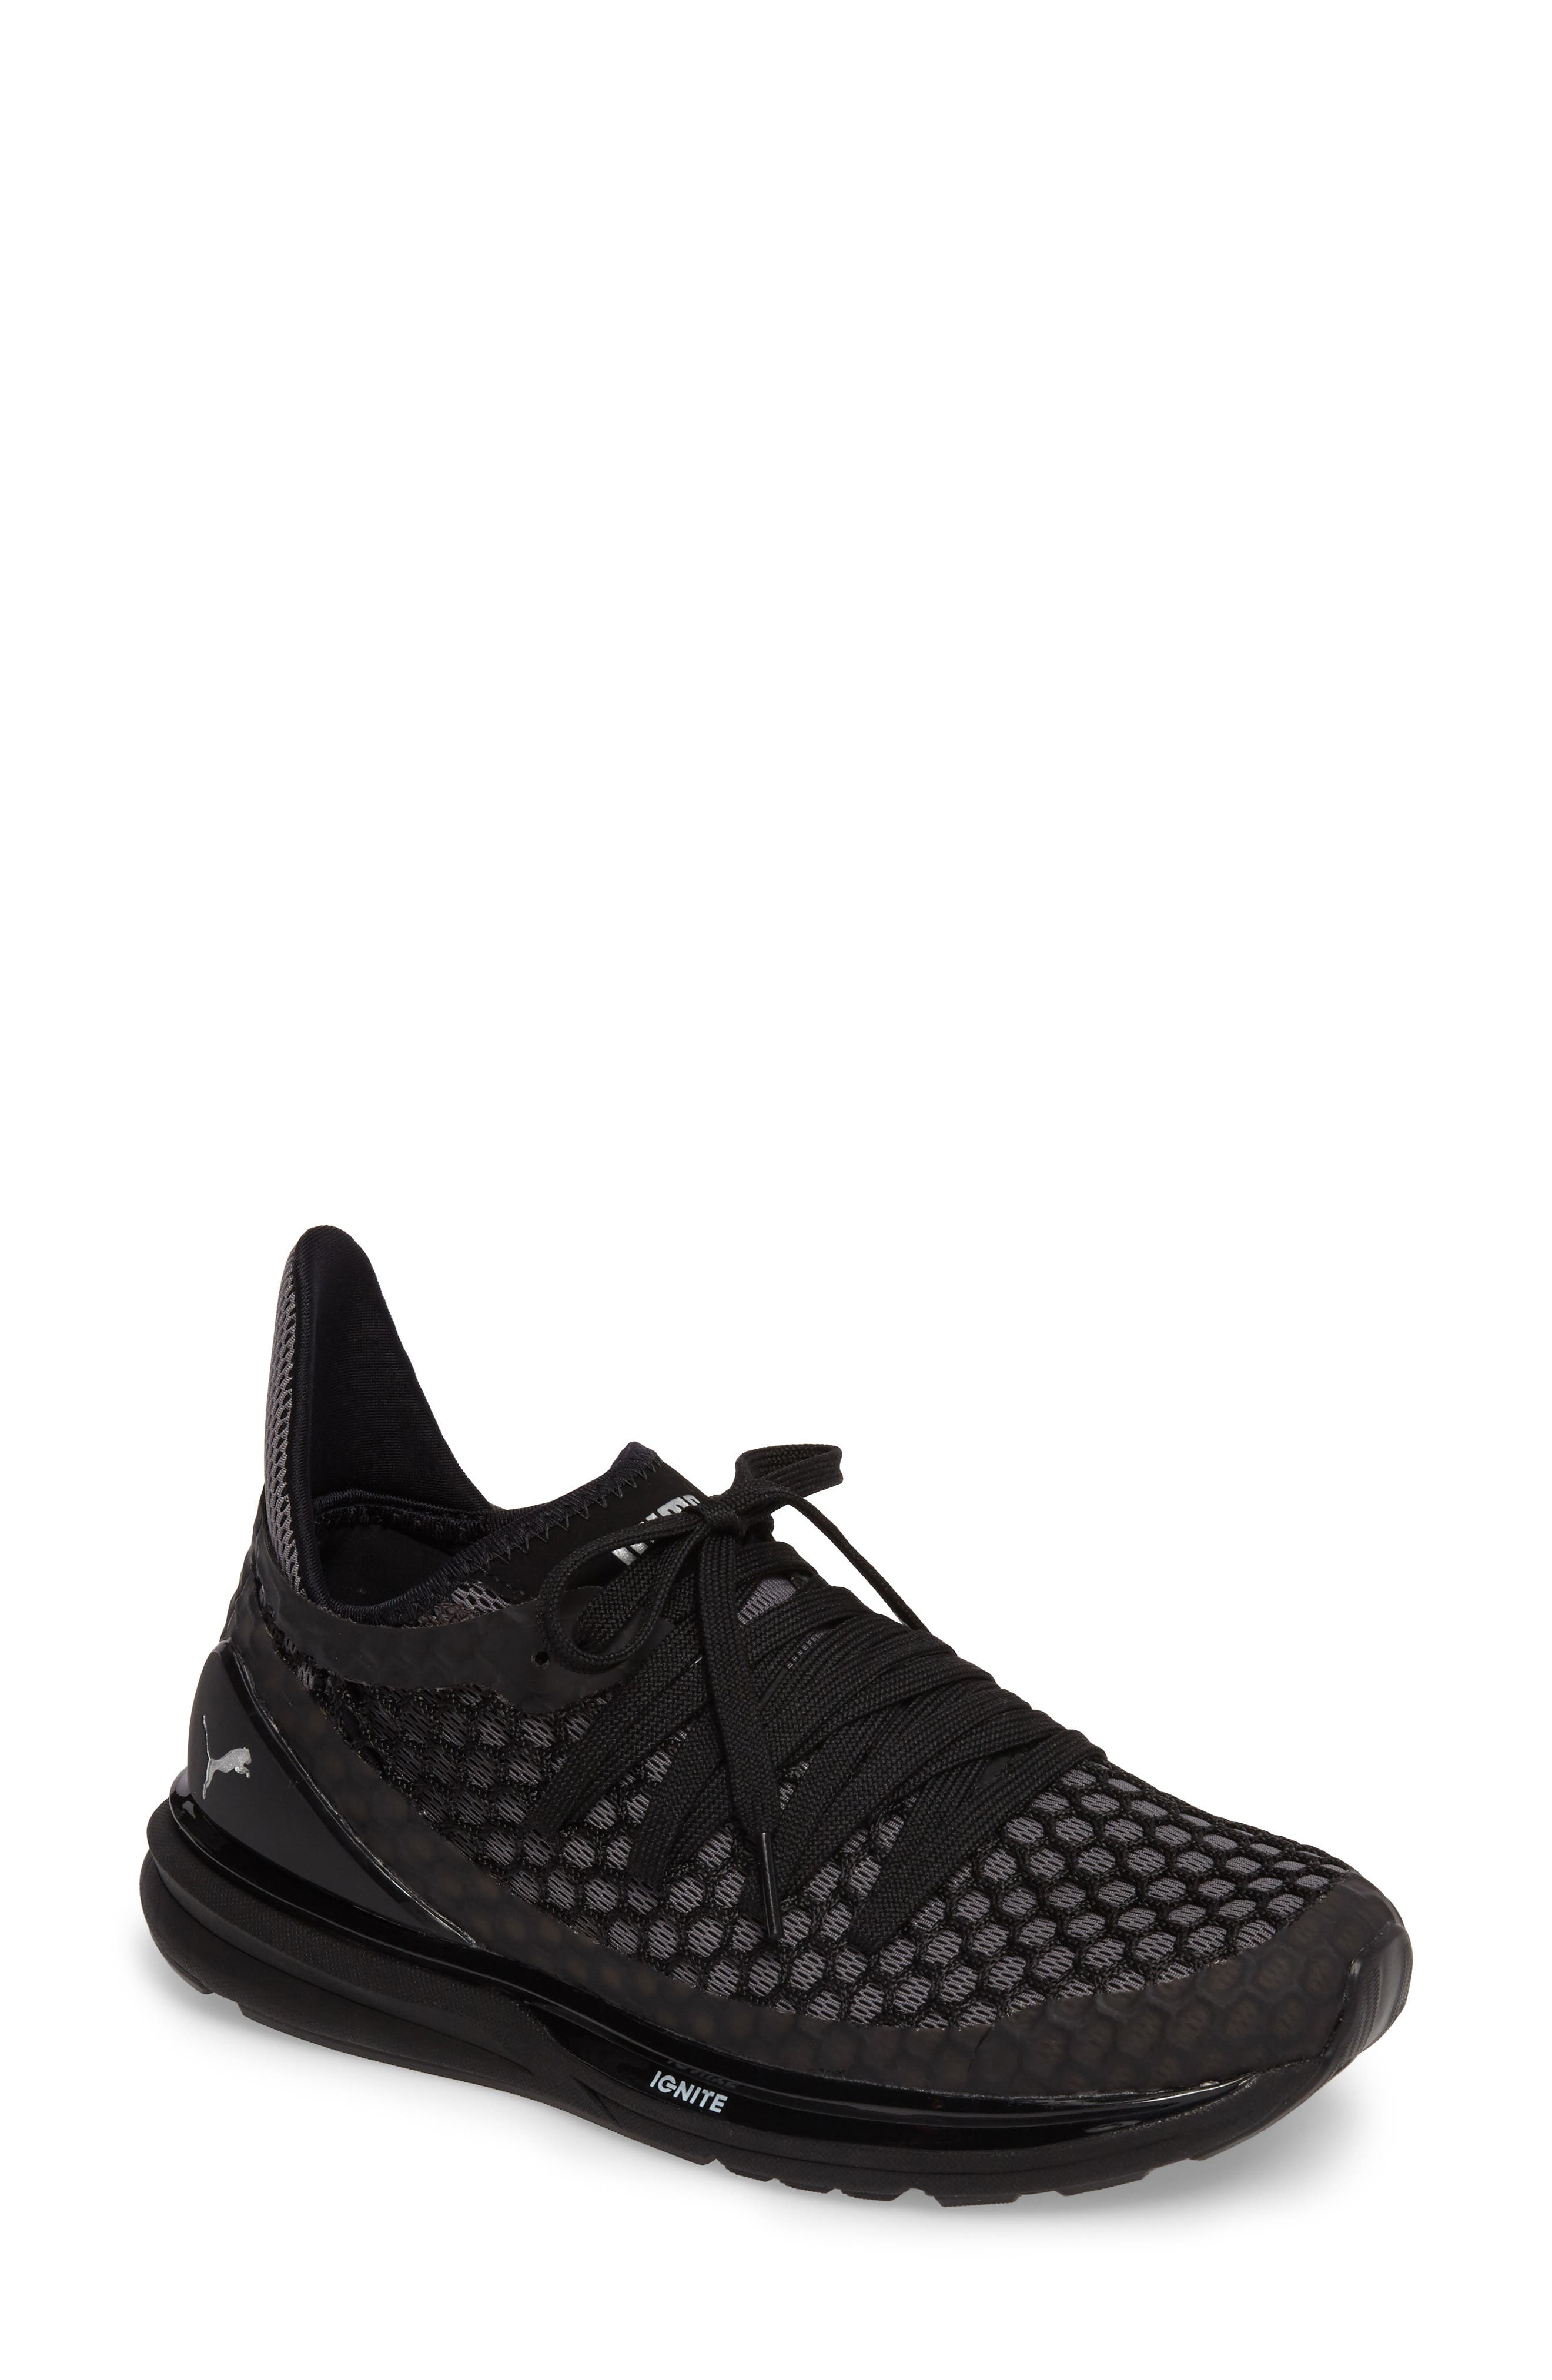 Ignite Limitless Netfit Running Shoe,                         Main,                         color, Black/ Silver